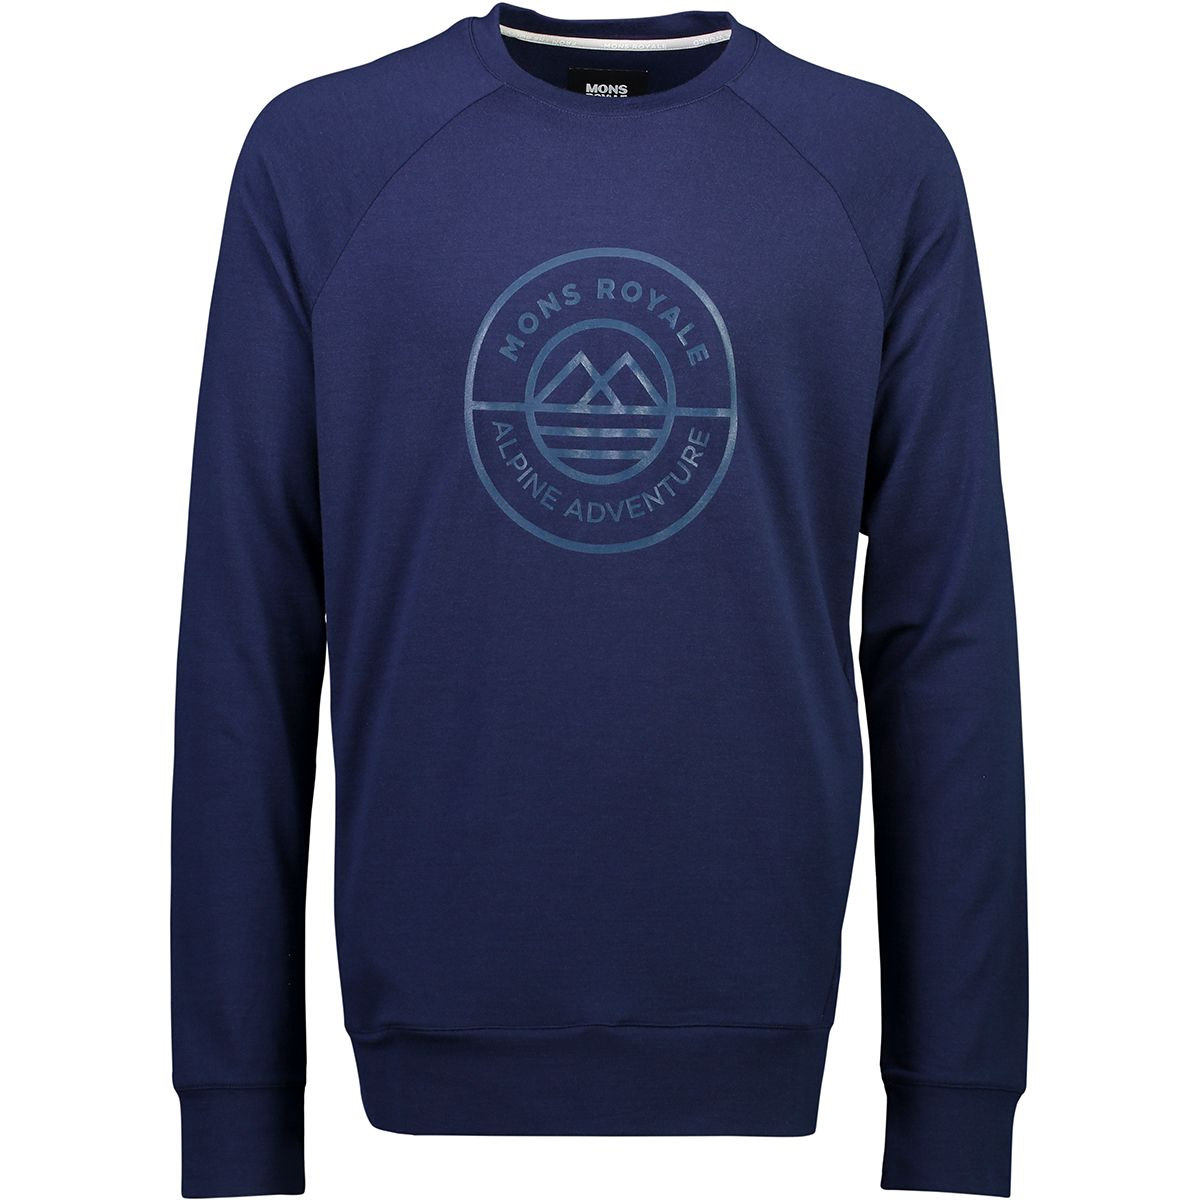 Mons Royale sweater